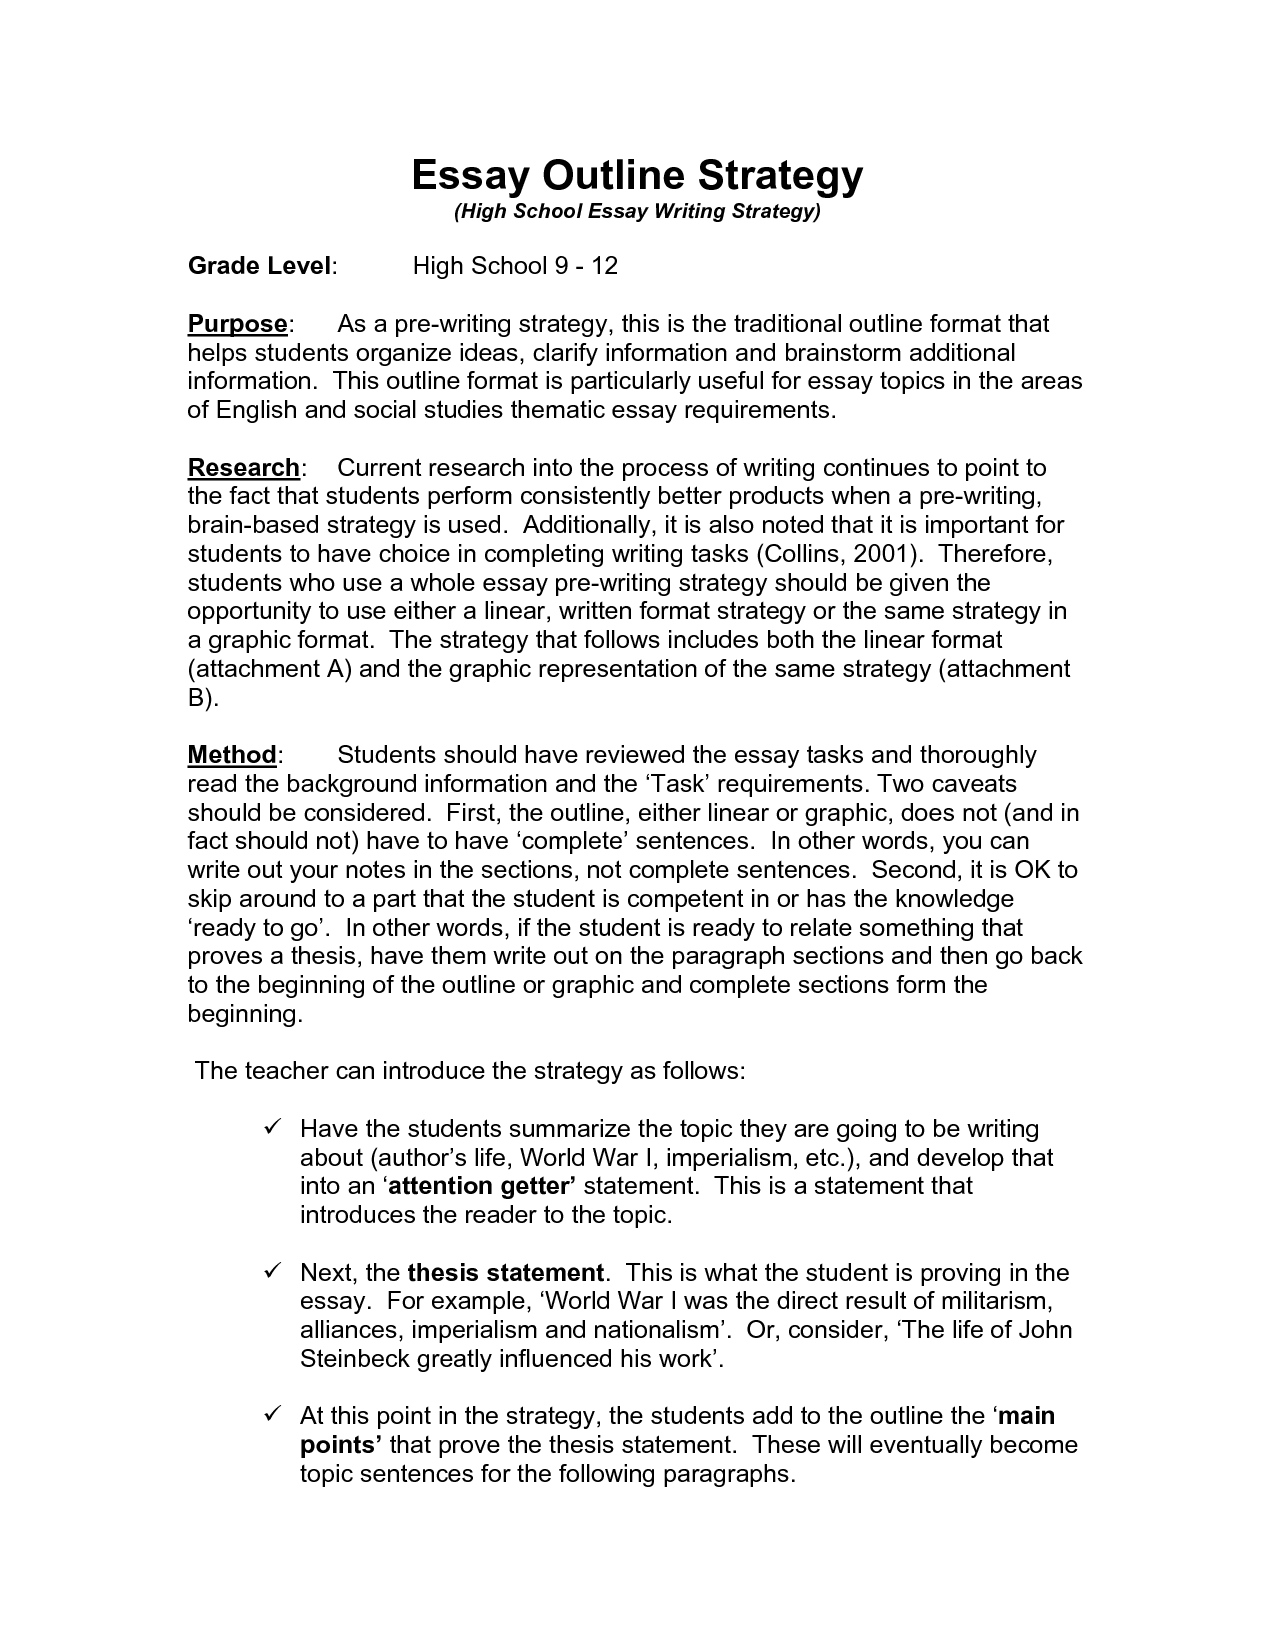 high school science research paper outline whatisbasicresearch a response essay examples uncategorized whatisbasicresearch a response essay examples uncategorized